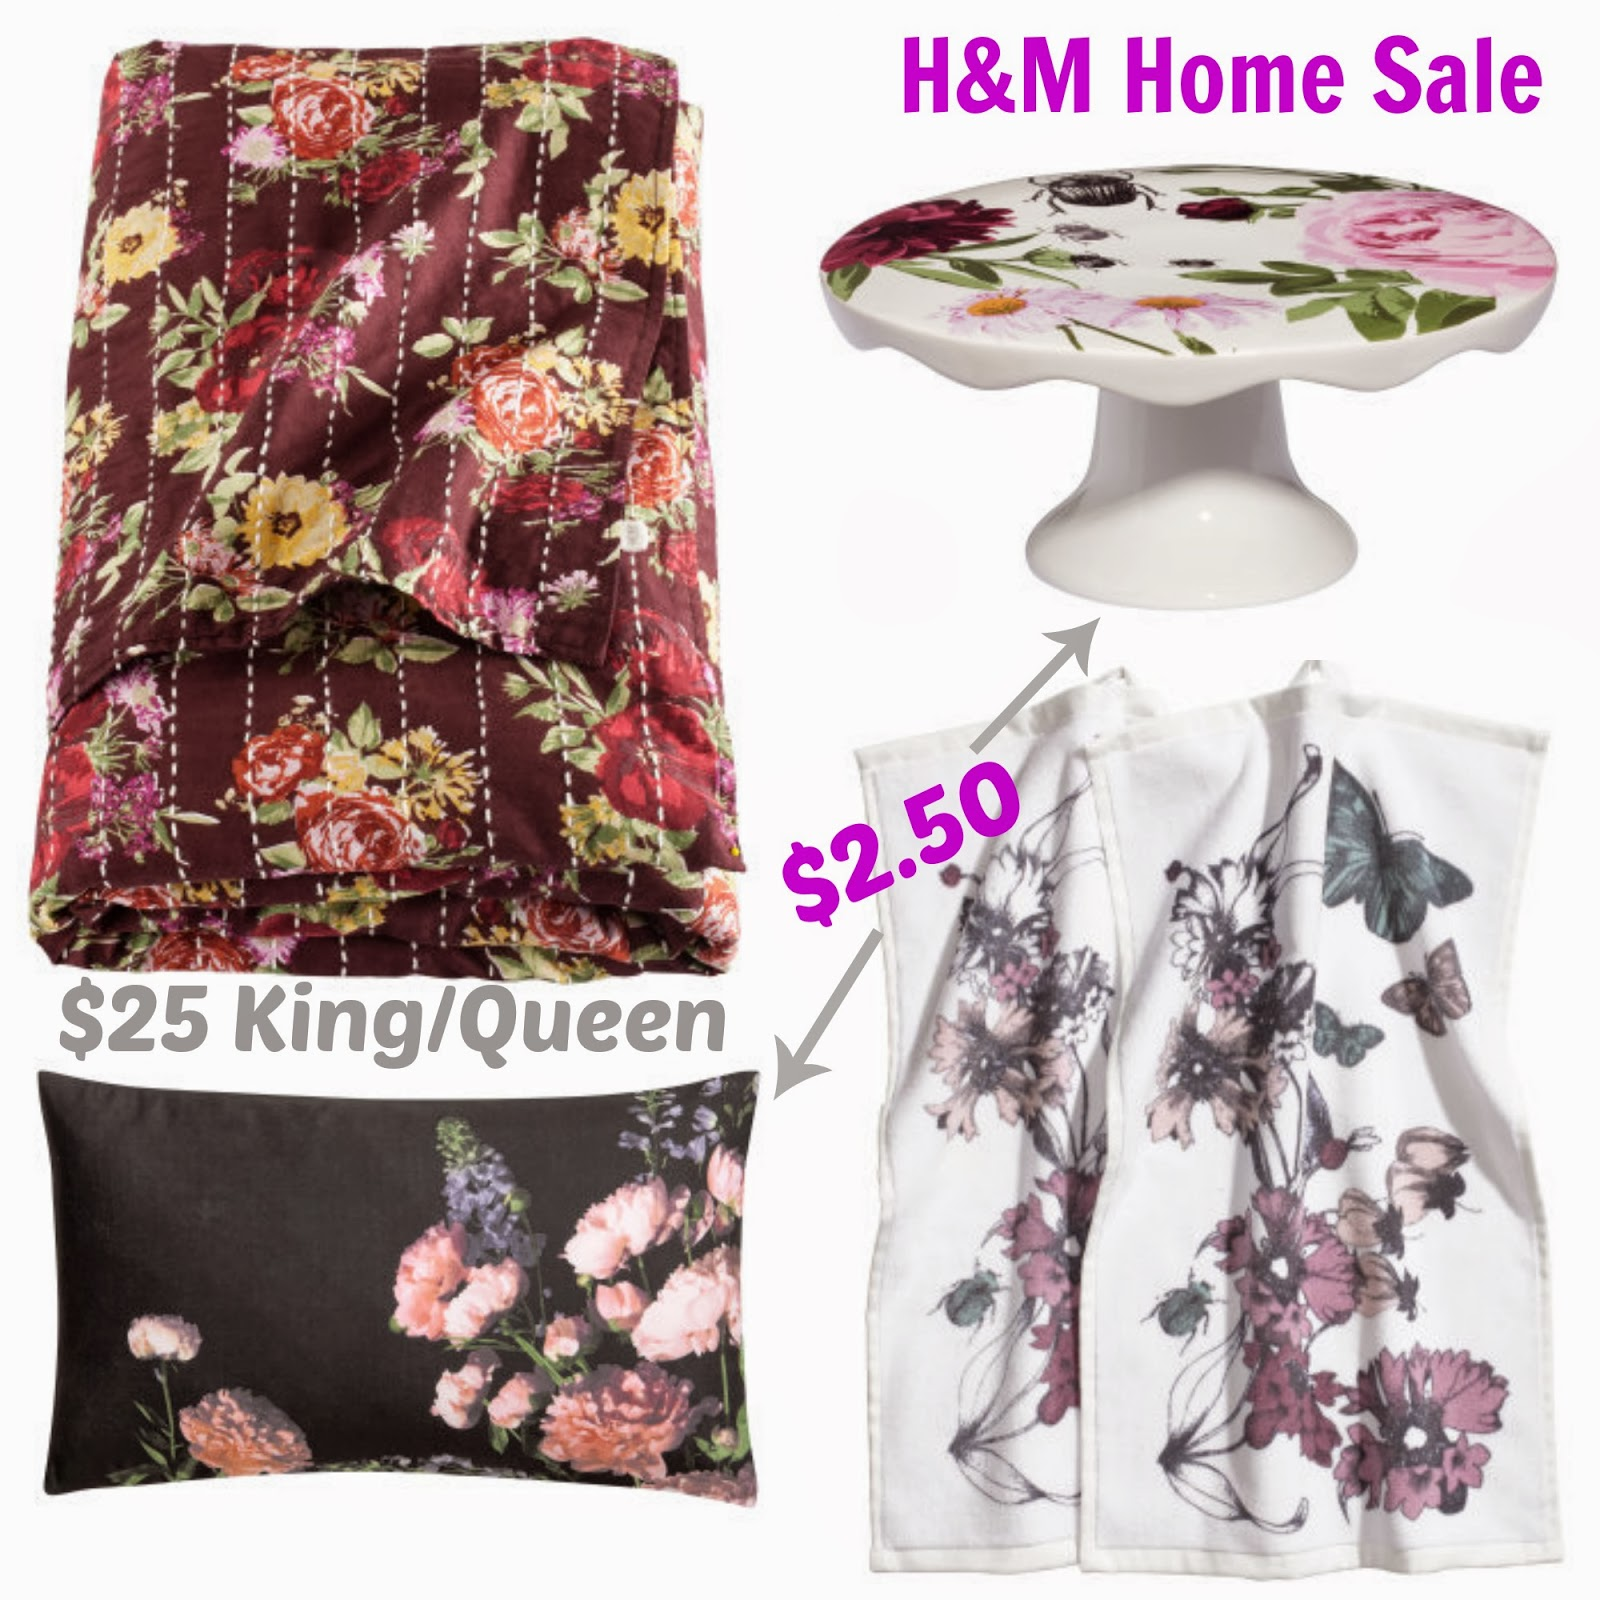 H&M Home Decor, Pillow, foral, tea towels, cake plate